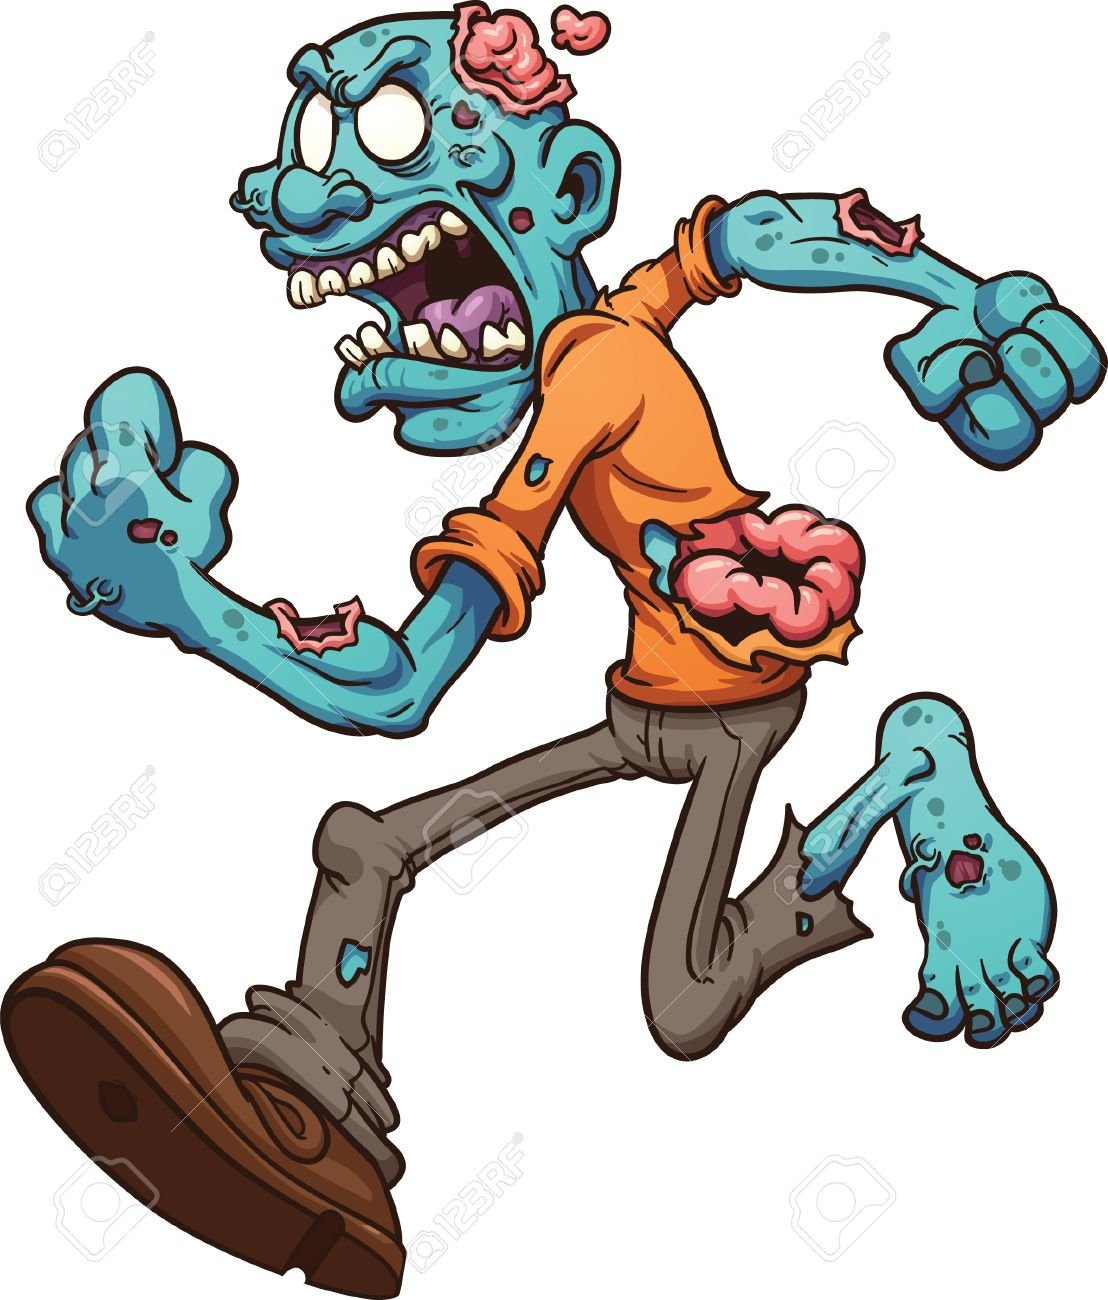 Running Zombie clip art illustration with simple gradients All...